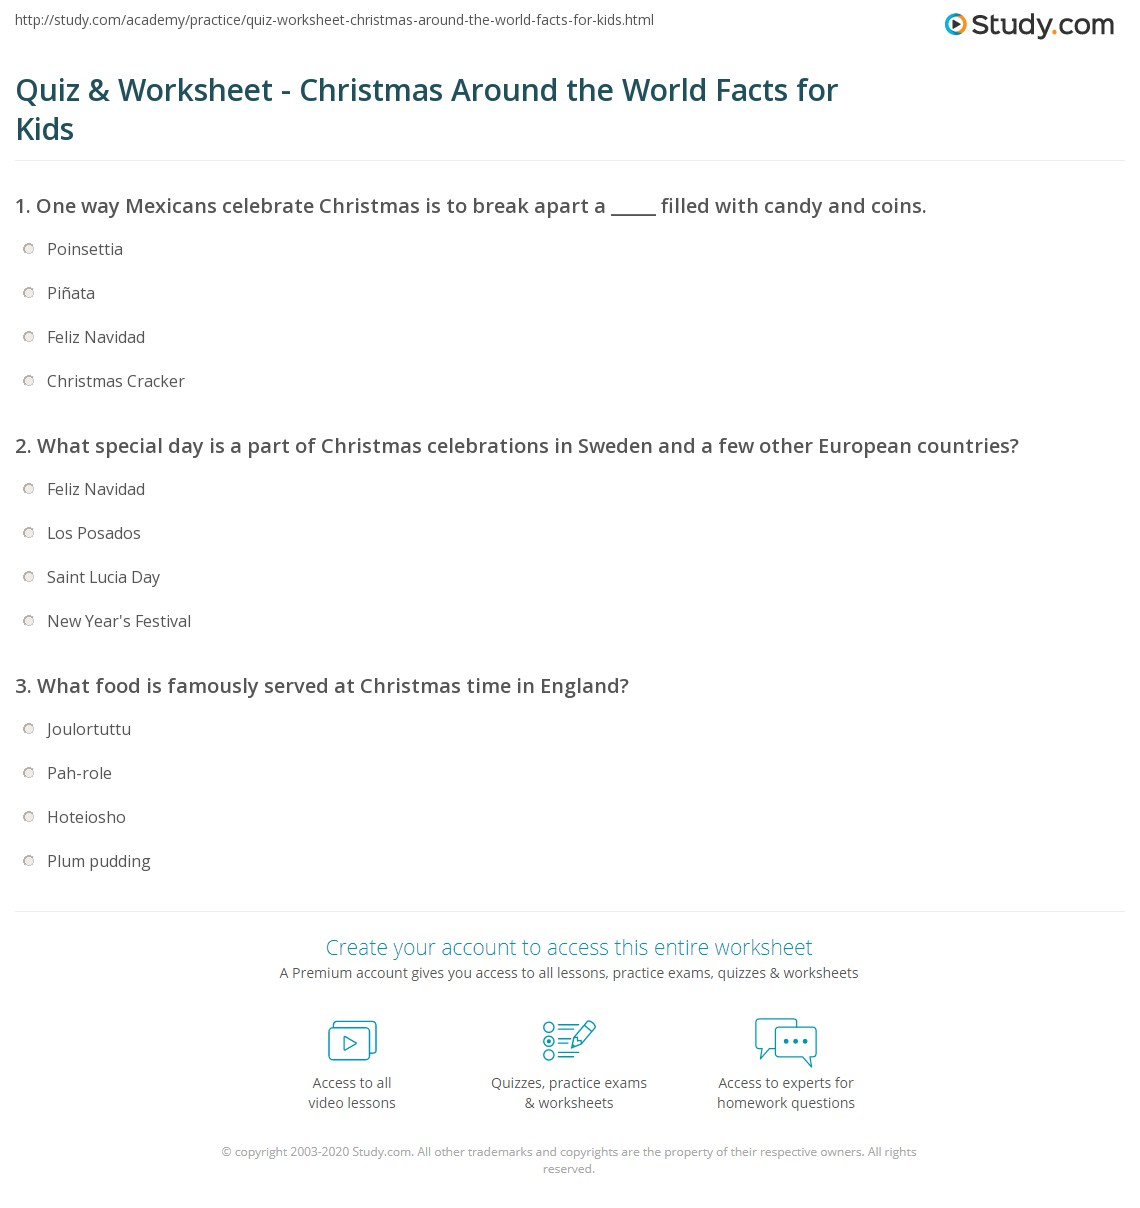 Quiz & Worksheet - Christmas Around the World Facts for Kids | Study.com